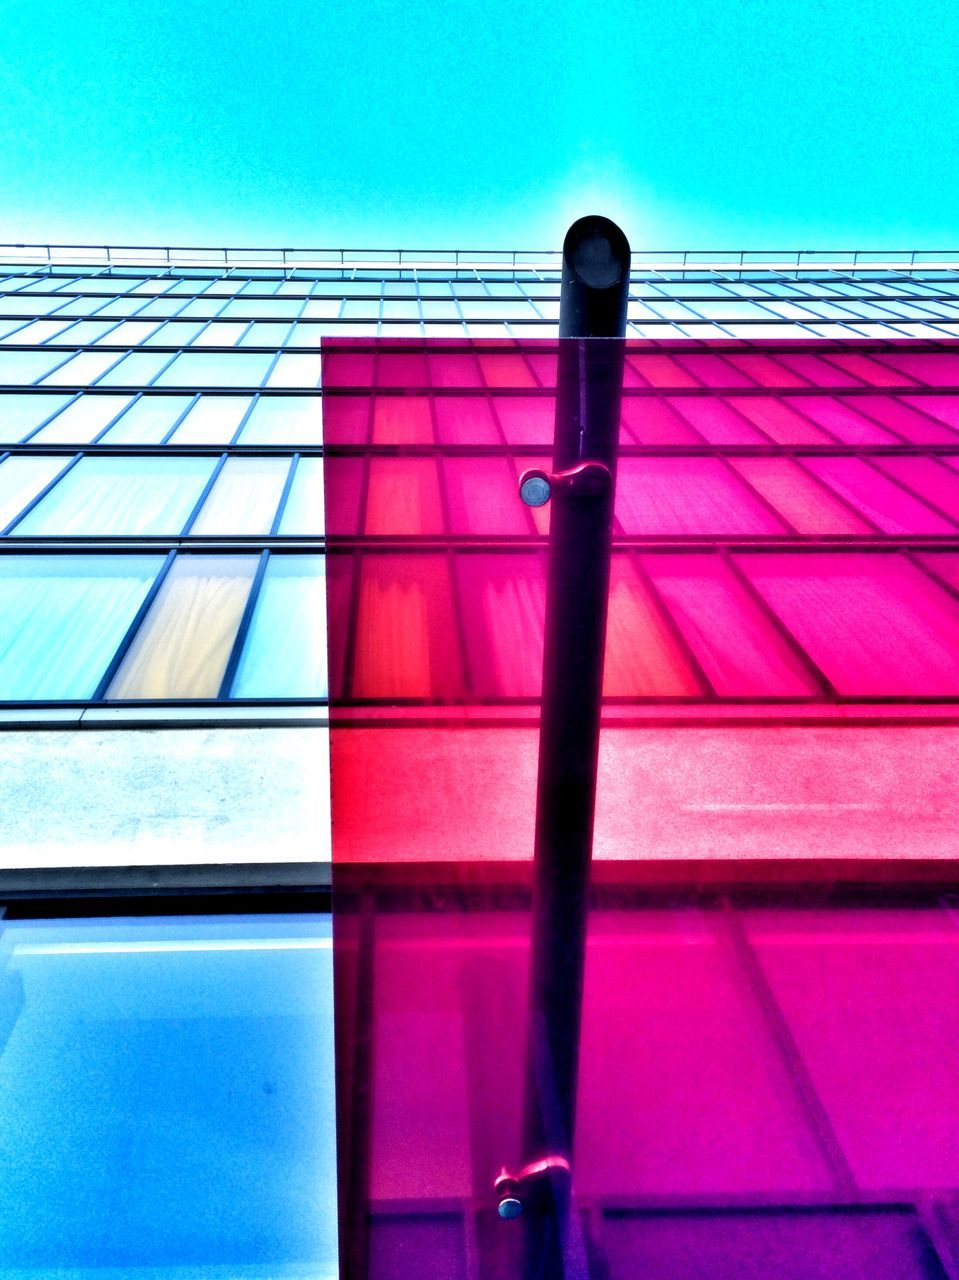 Low Angle View Of Open Window Of Glass Building Against Sky